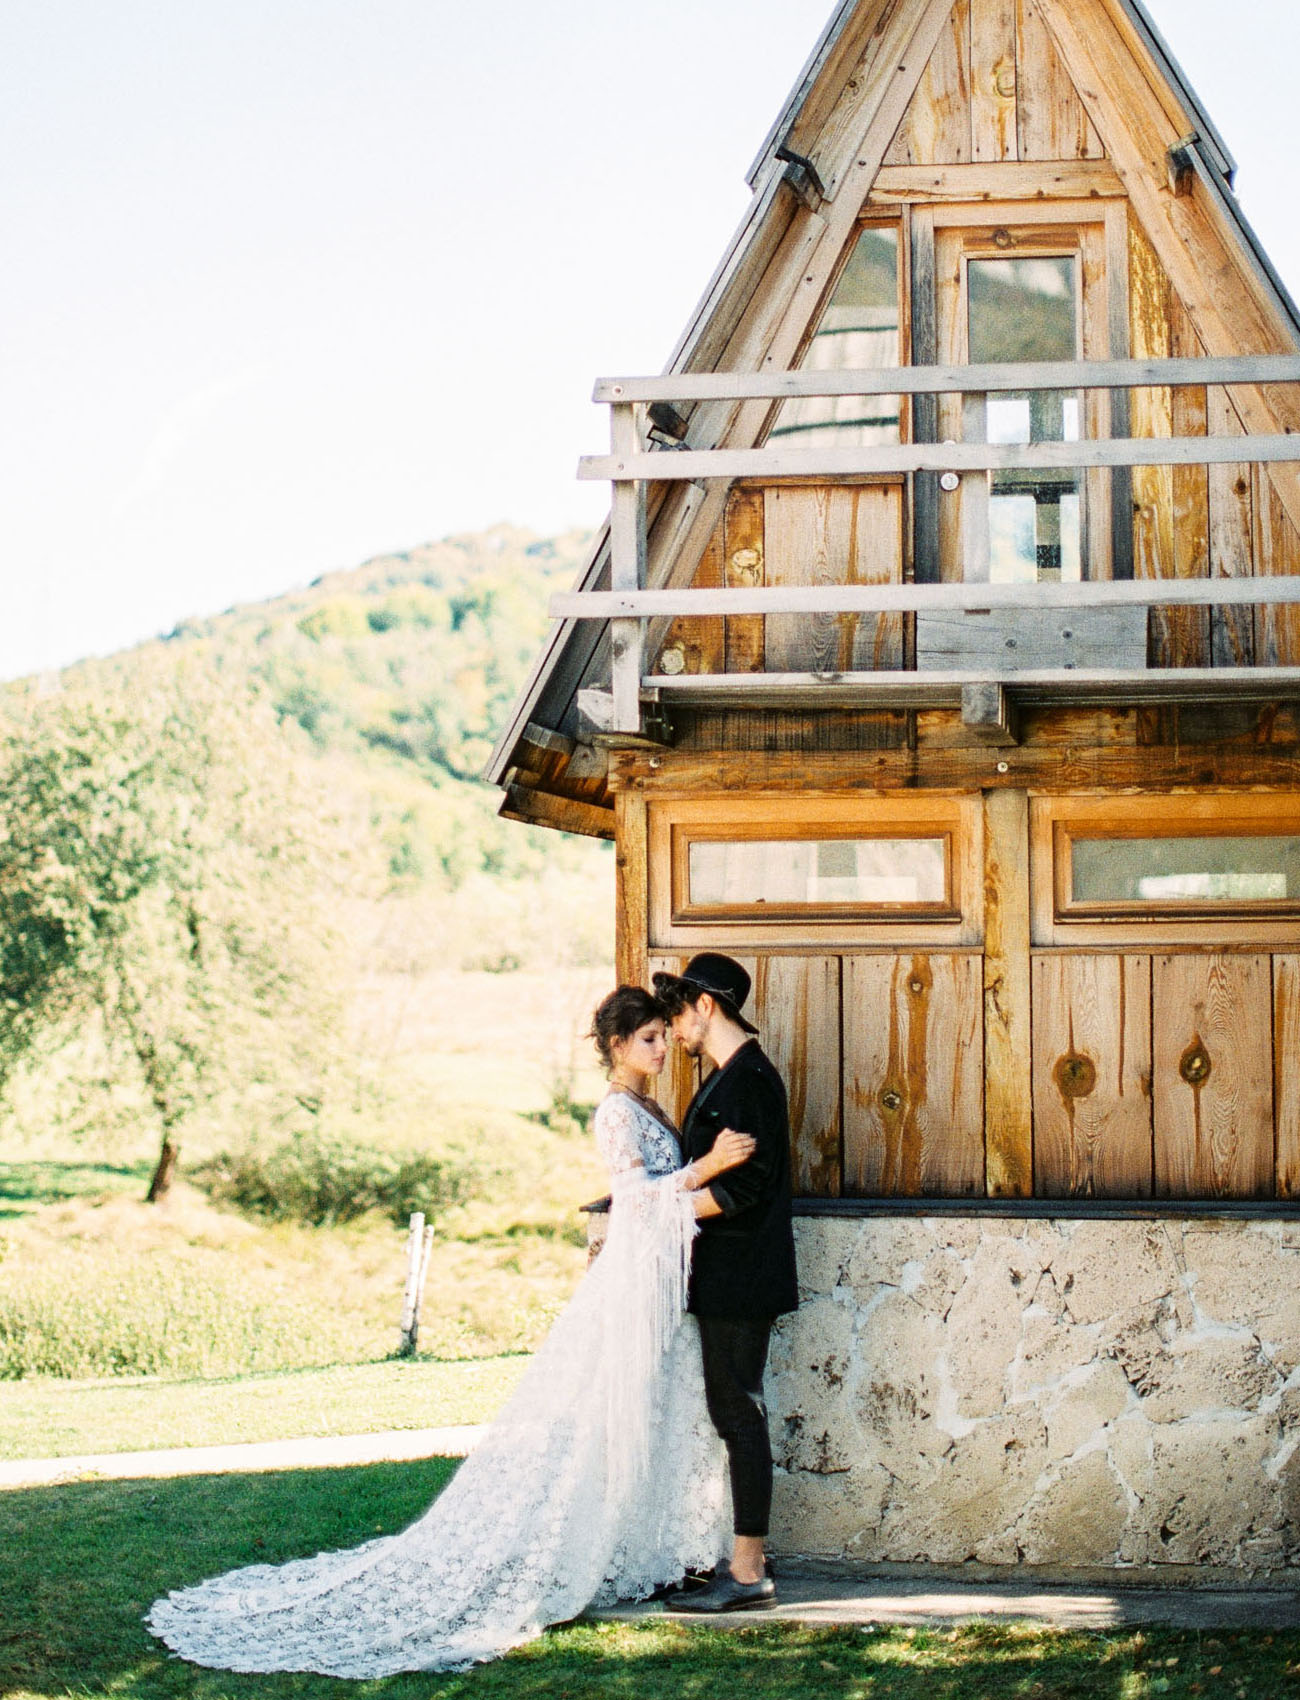 This wild and free spirited wedding shoot took place in Montenegro